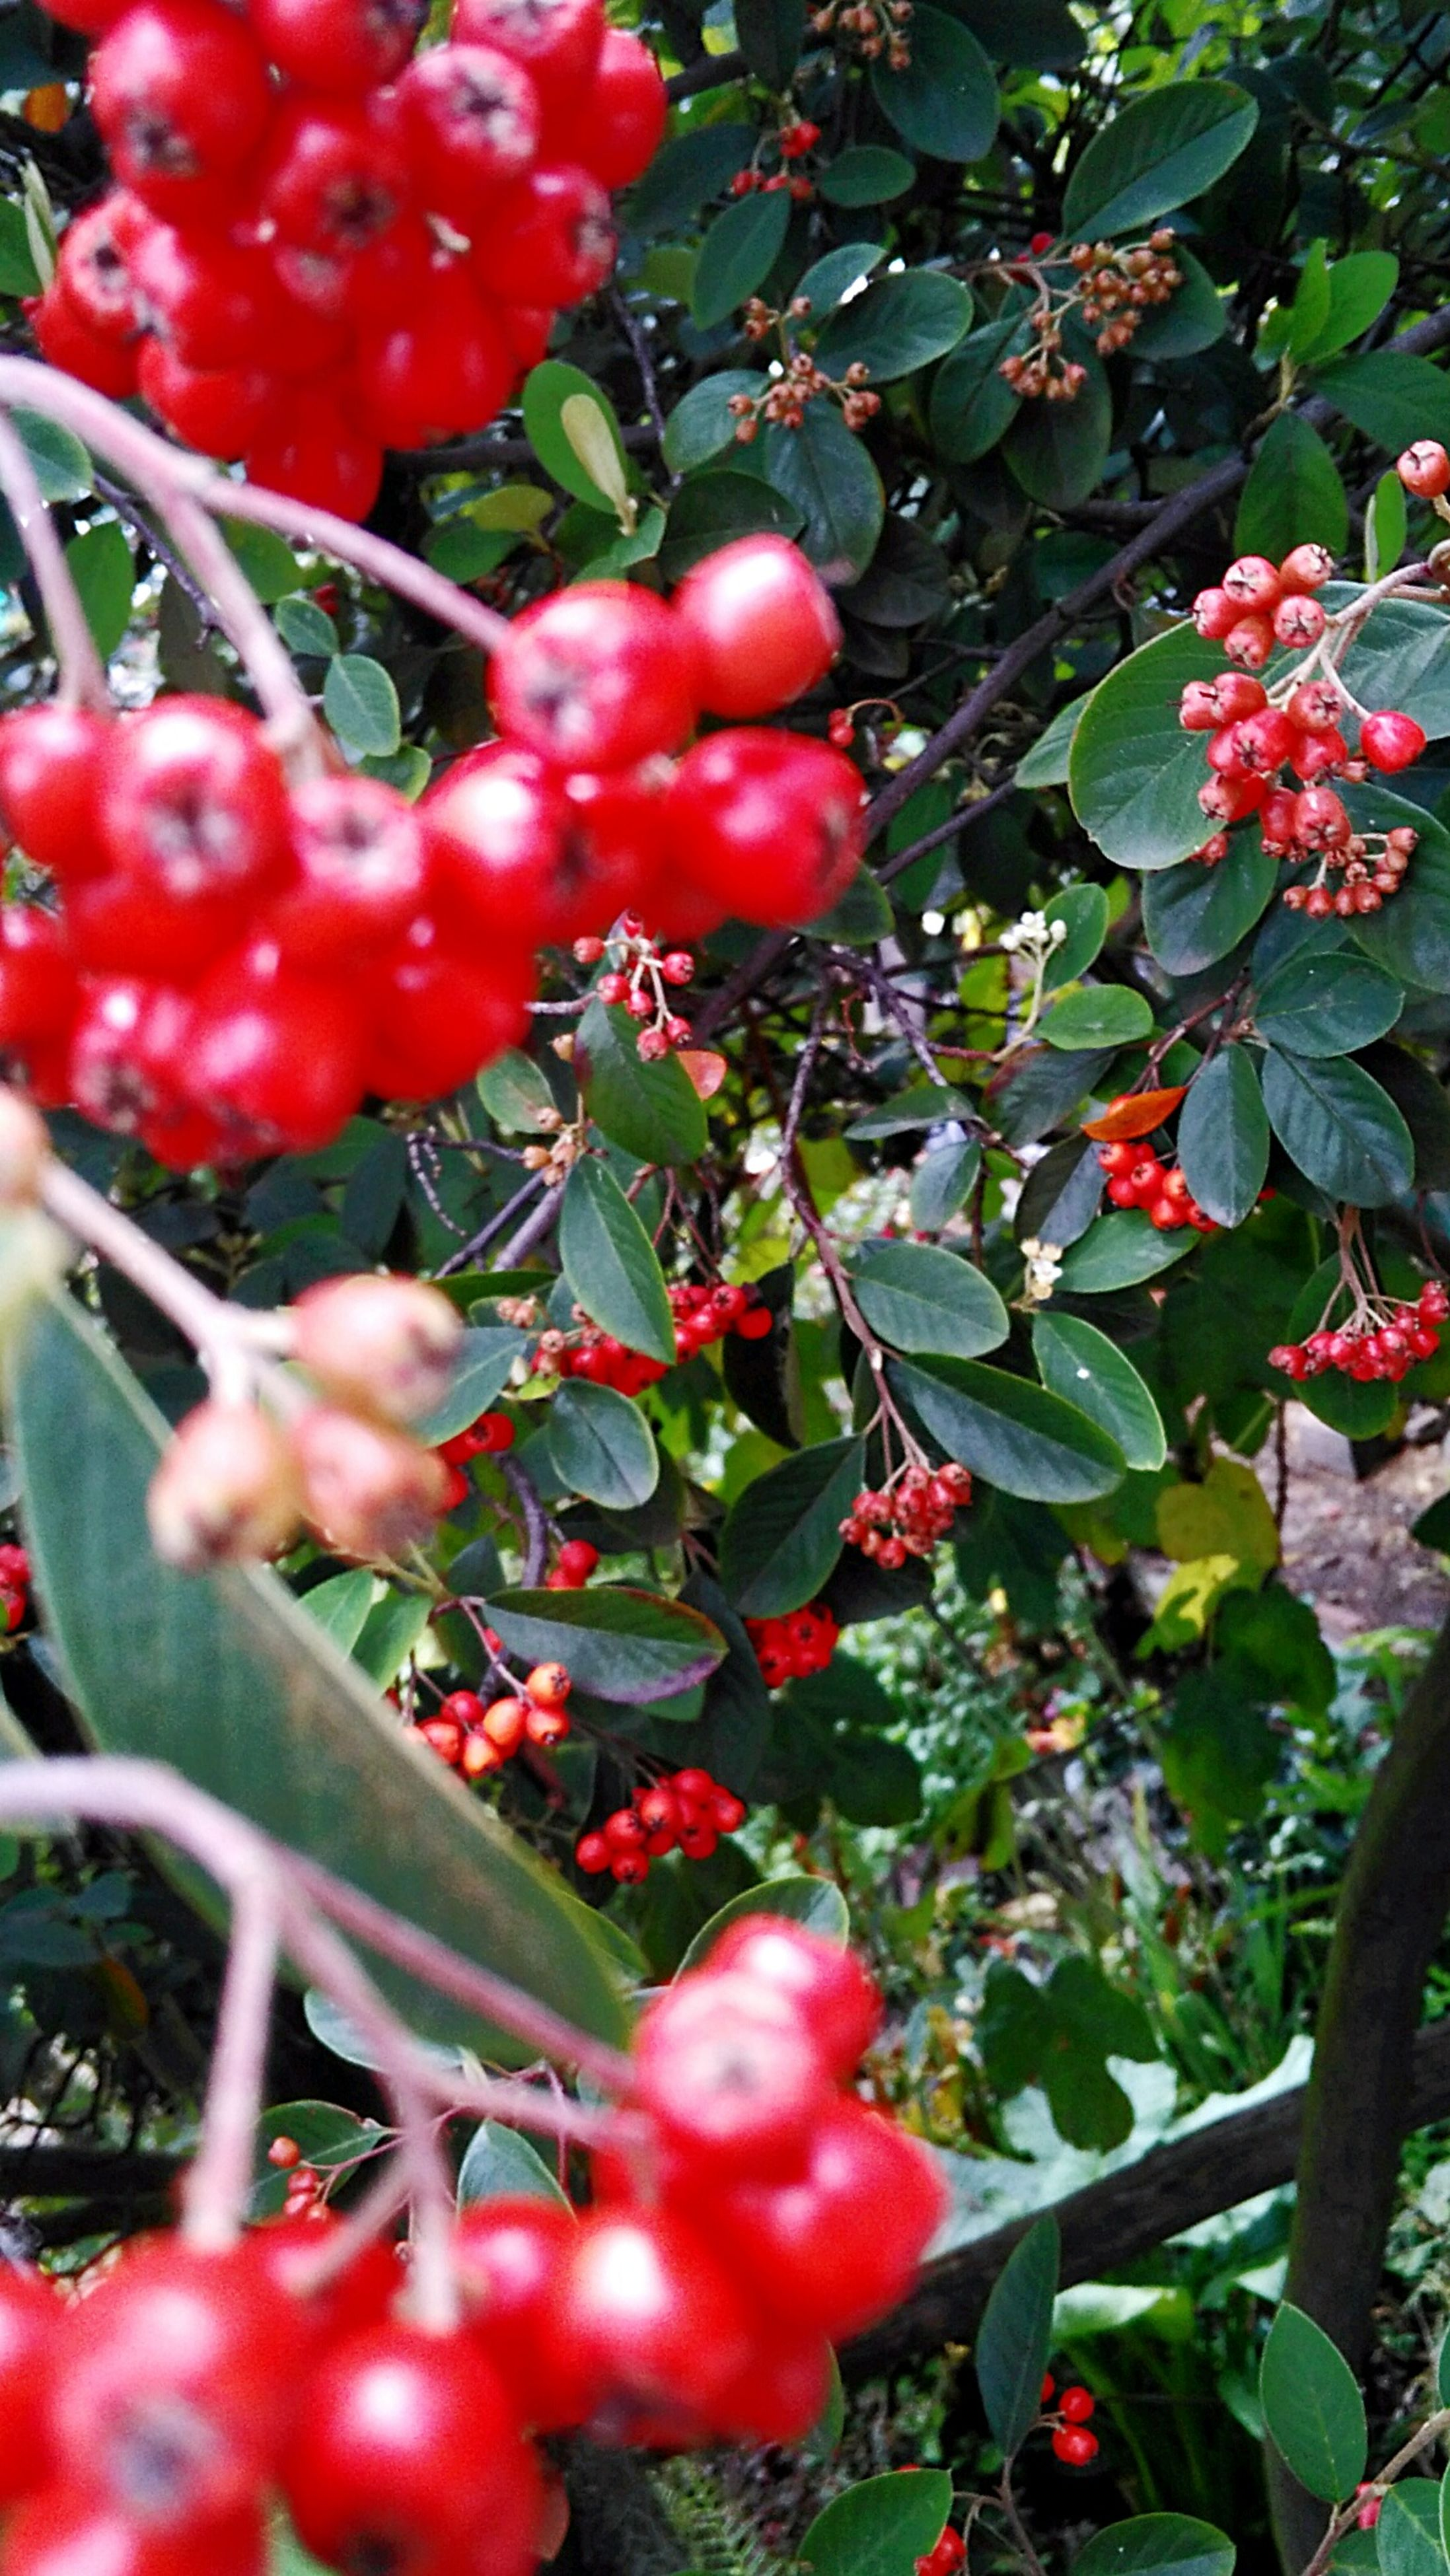 fruit, red, growth, food and drink, food, freshness, tree, healthy eating, nature, growing, day, outdoors, leaf, agriculture, no people, rowanberry, ripe, plant, green color, branch, close-up, beauty in nature